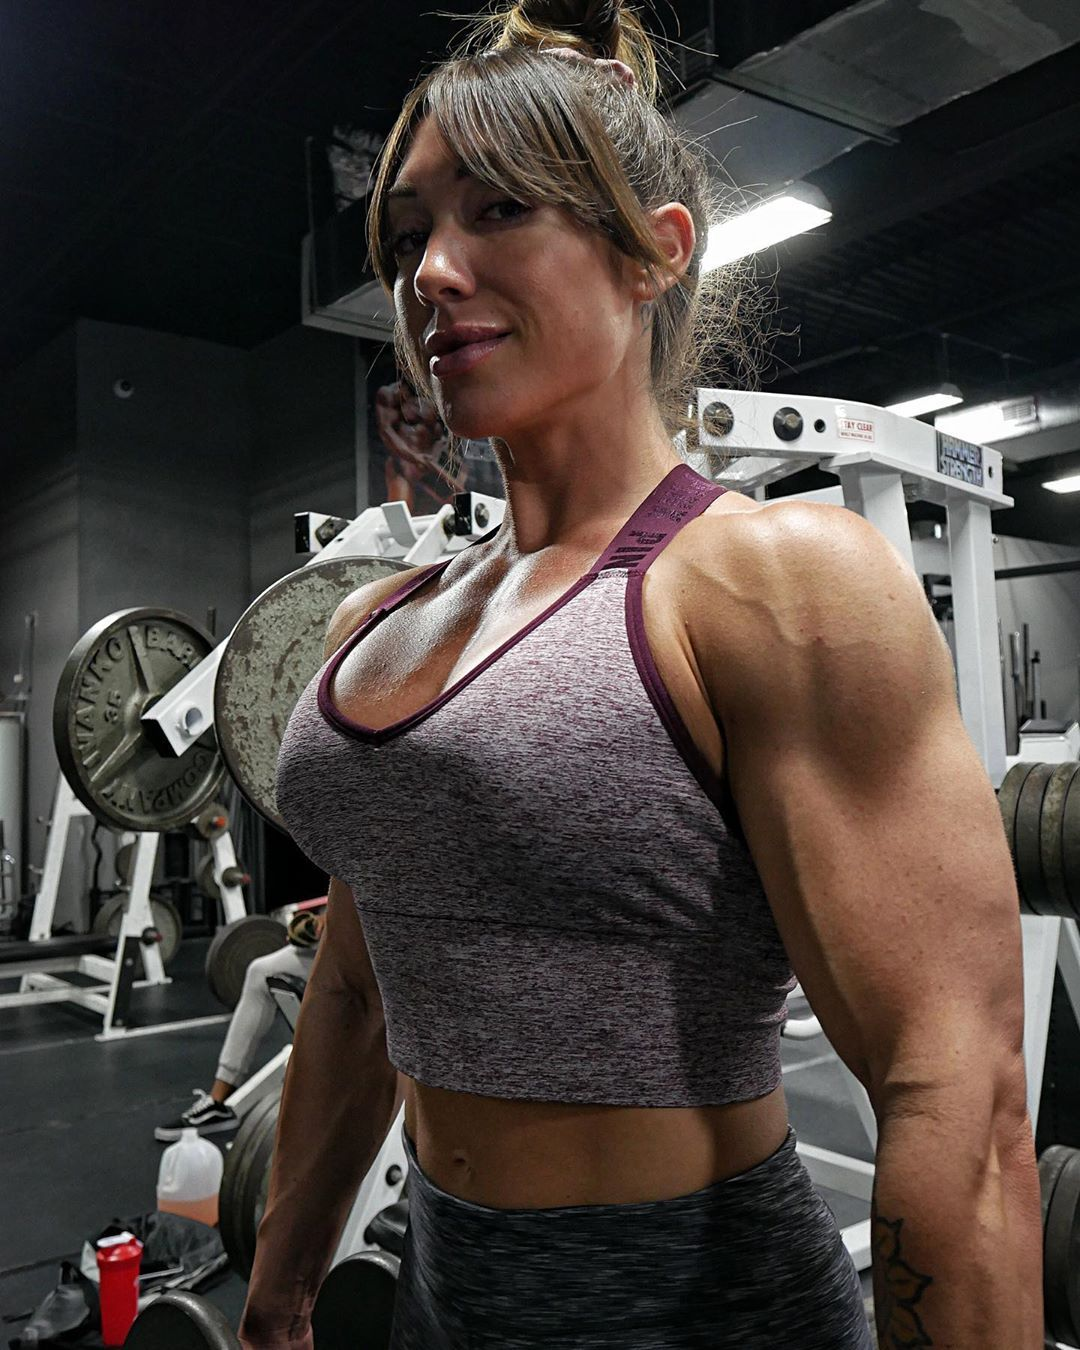 Mike ashley claimed natural bodybuilding status throughout his career and is now a personal trainer. Pin on Strong Females